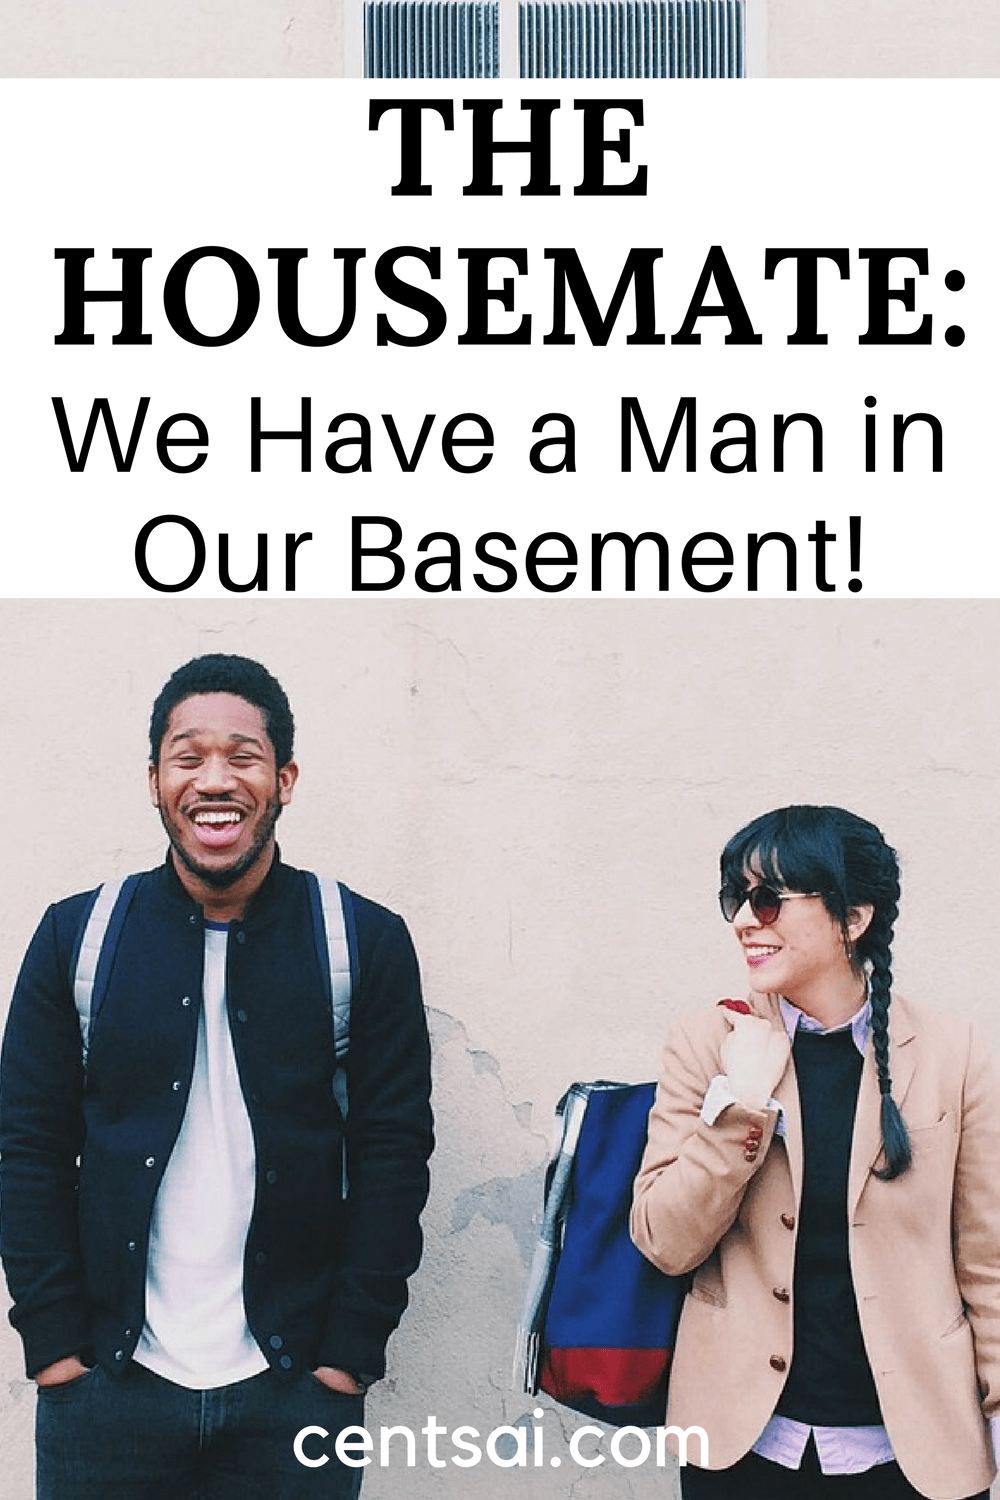 We Have a Man in Our Basement!